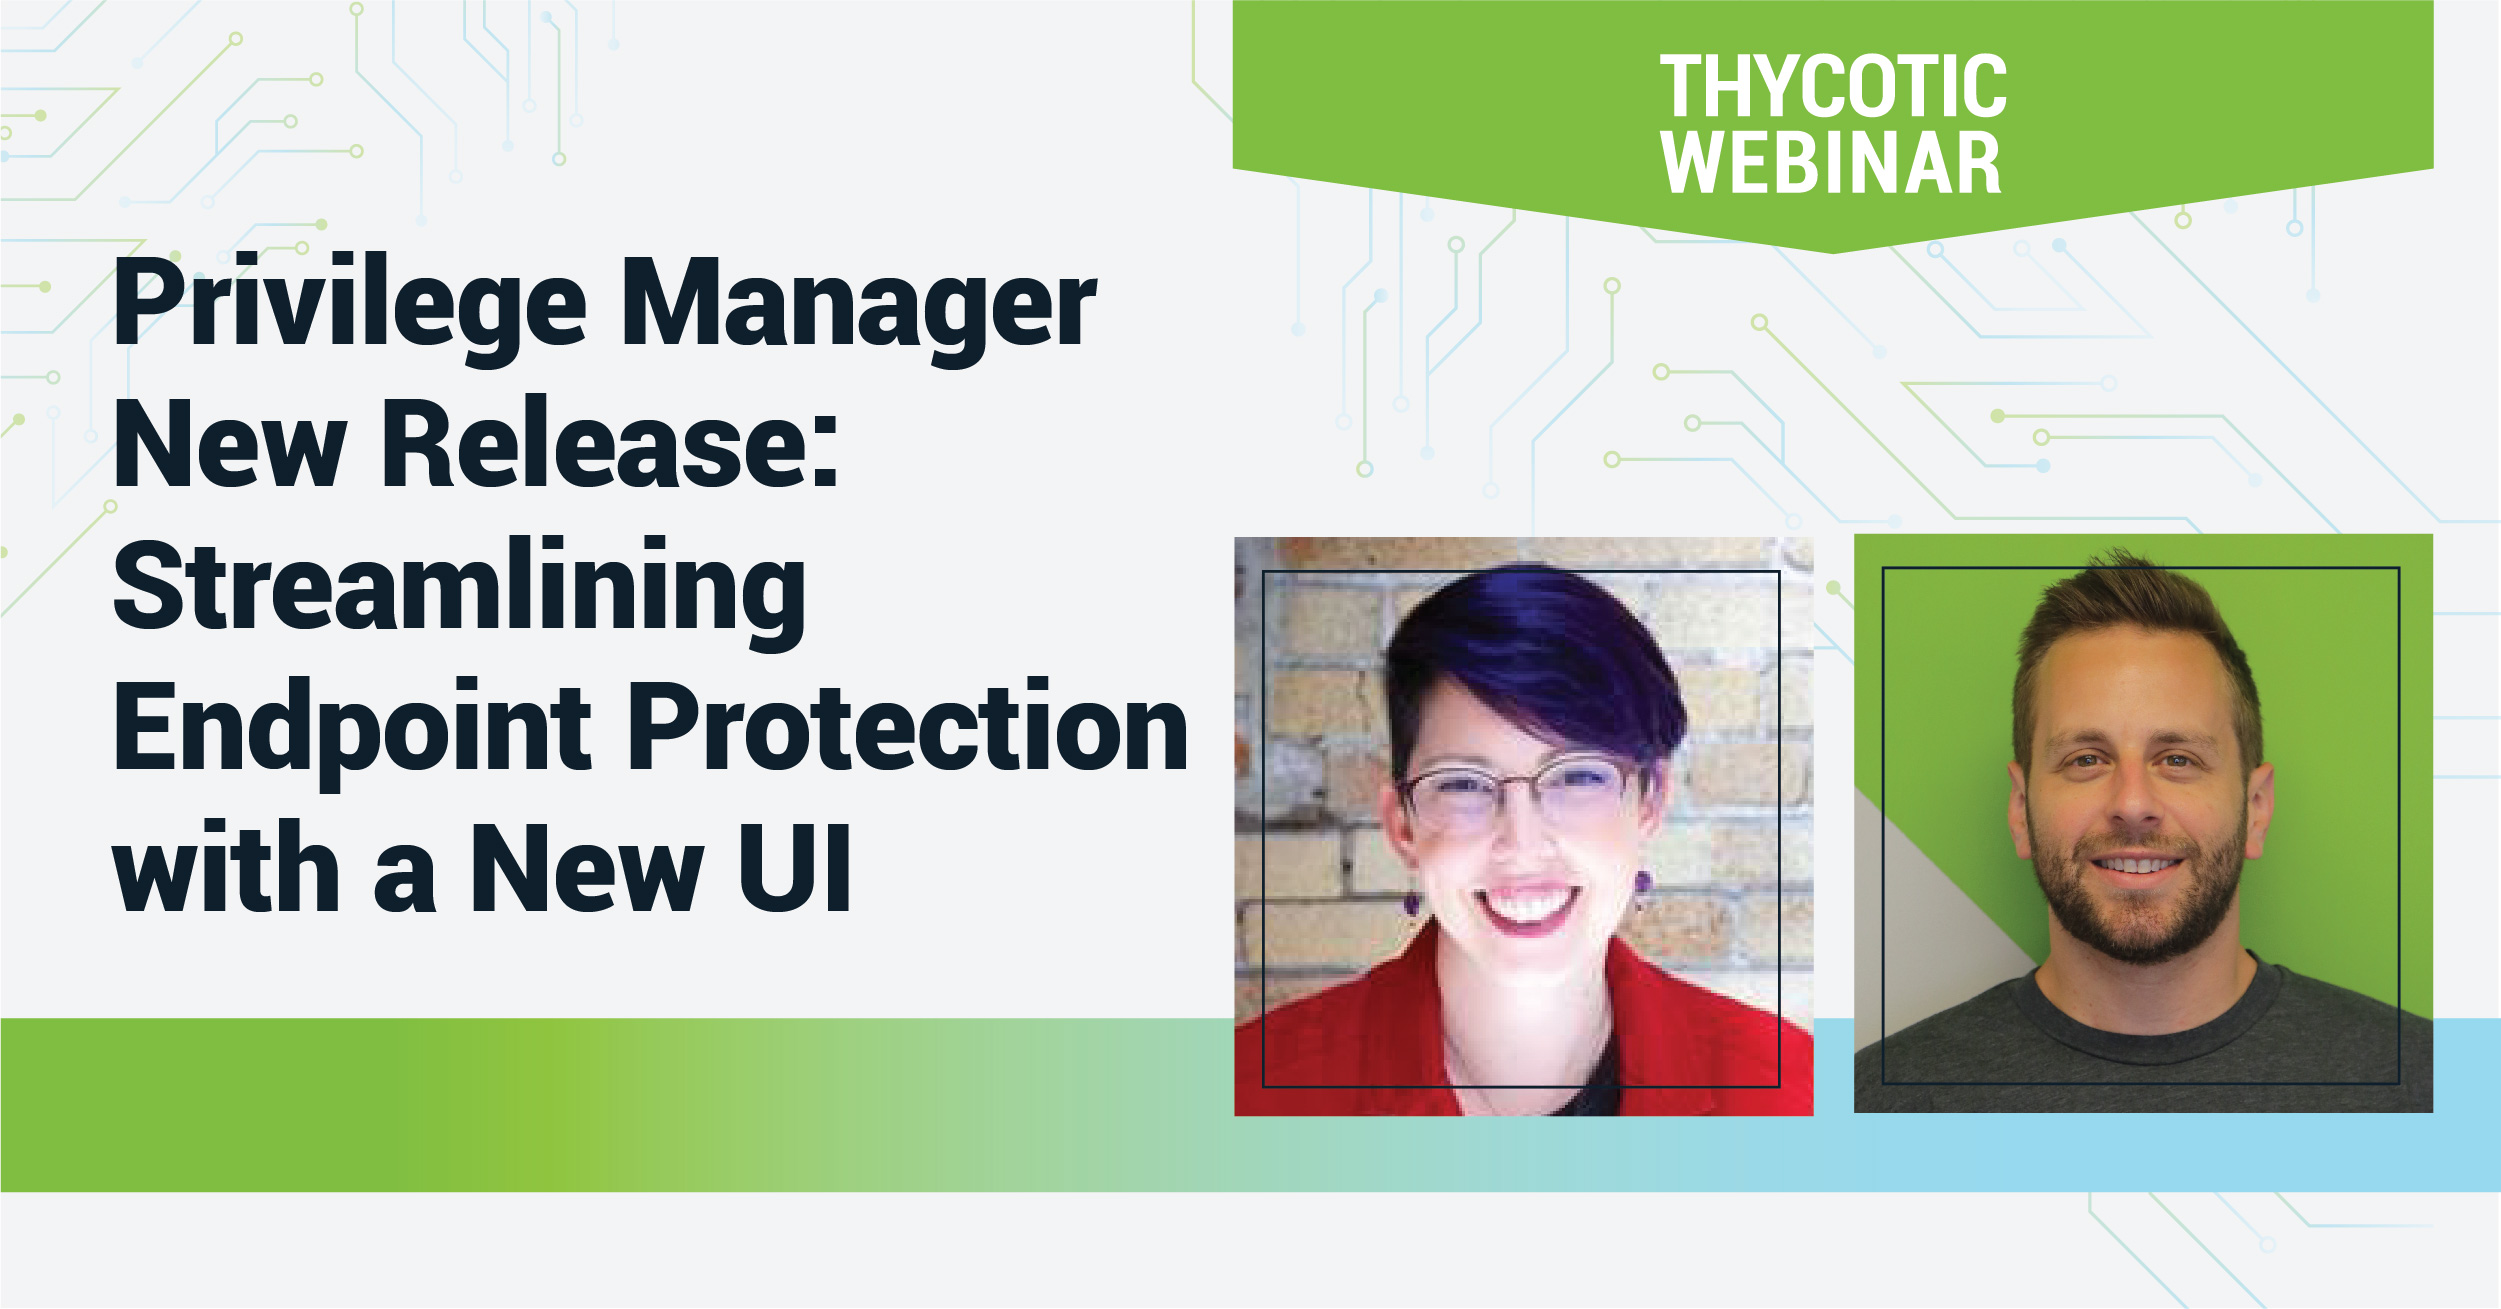 Privilege Manager New Release: Streamlining Endpoint Protection with a New UI